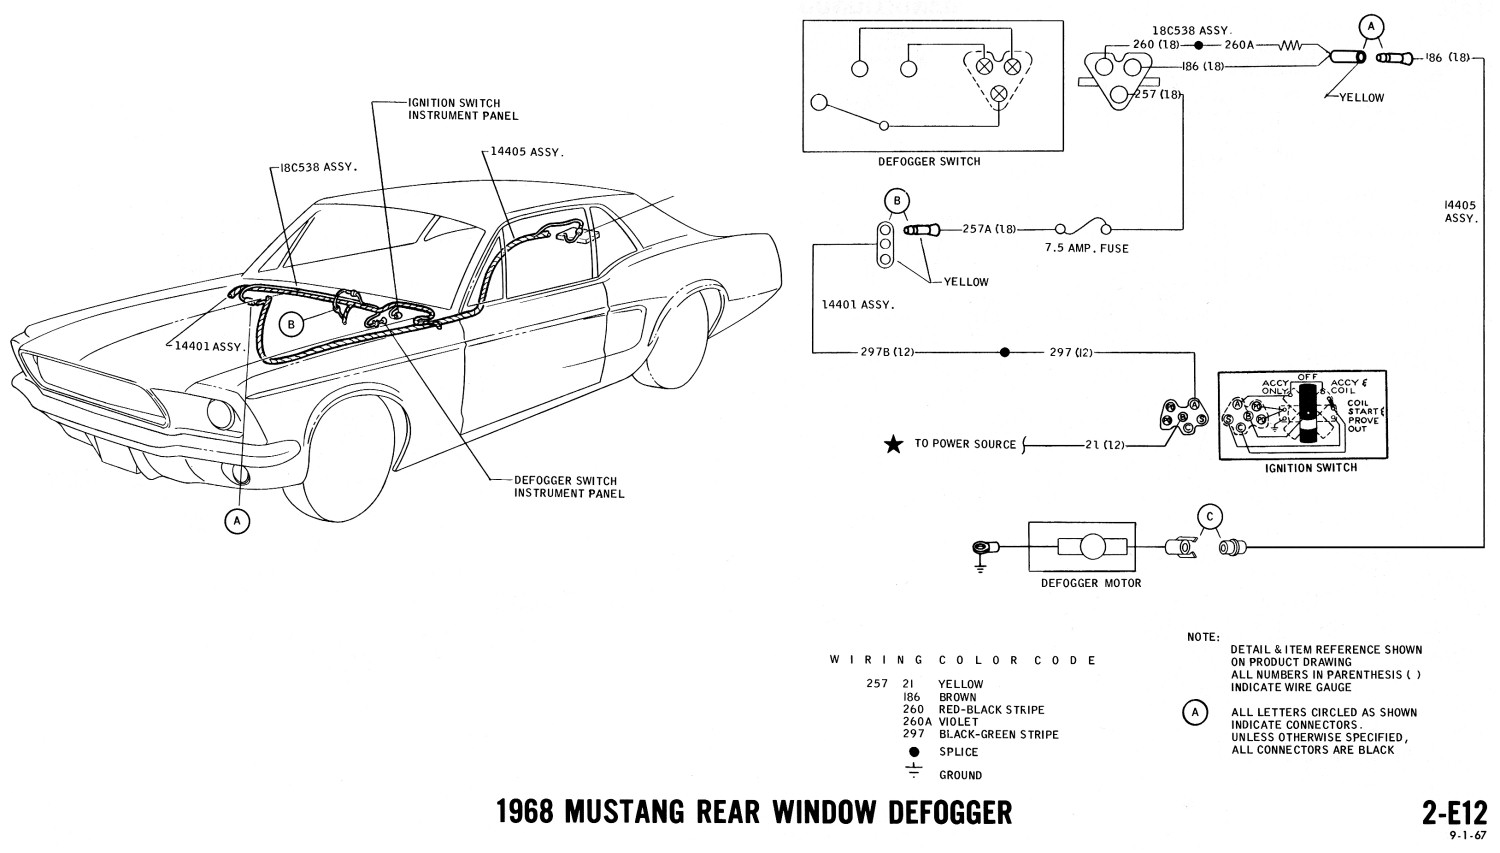 1968-mustang-wiring-diagram-rear-window-defrost